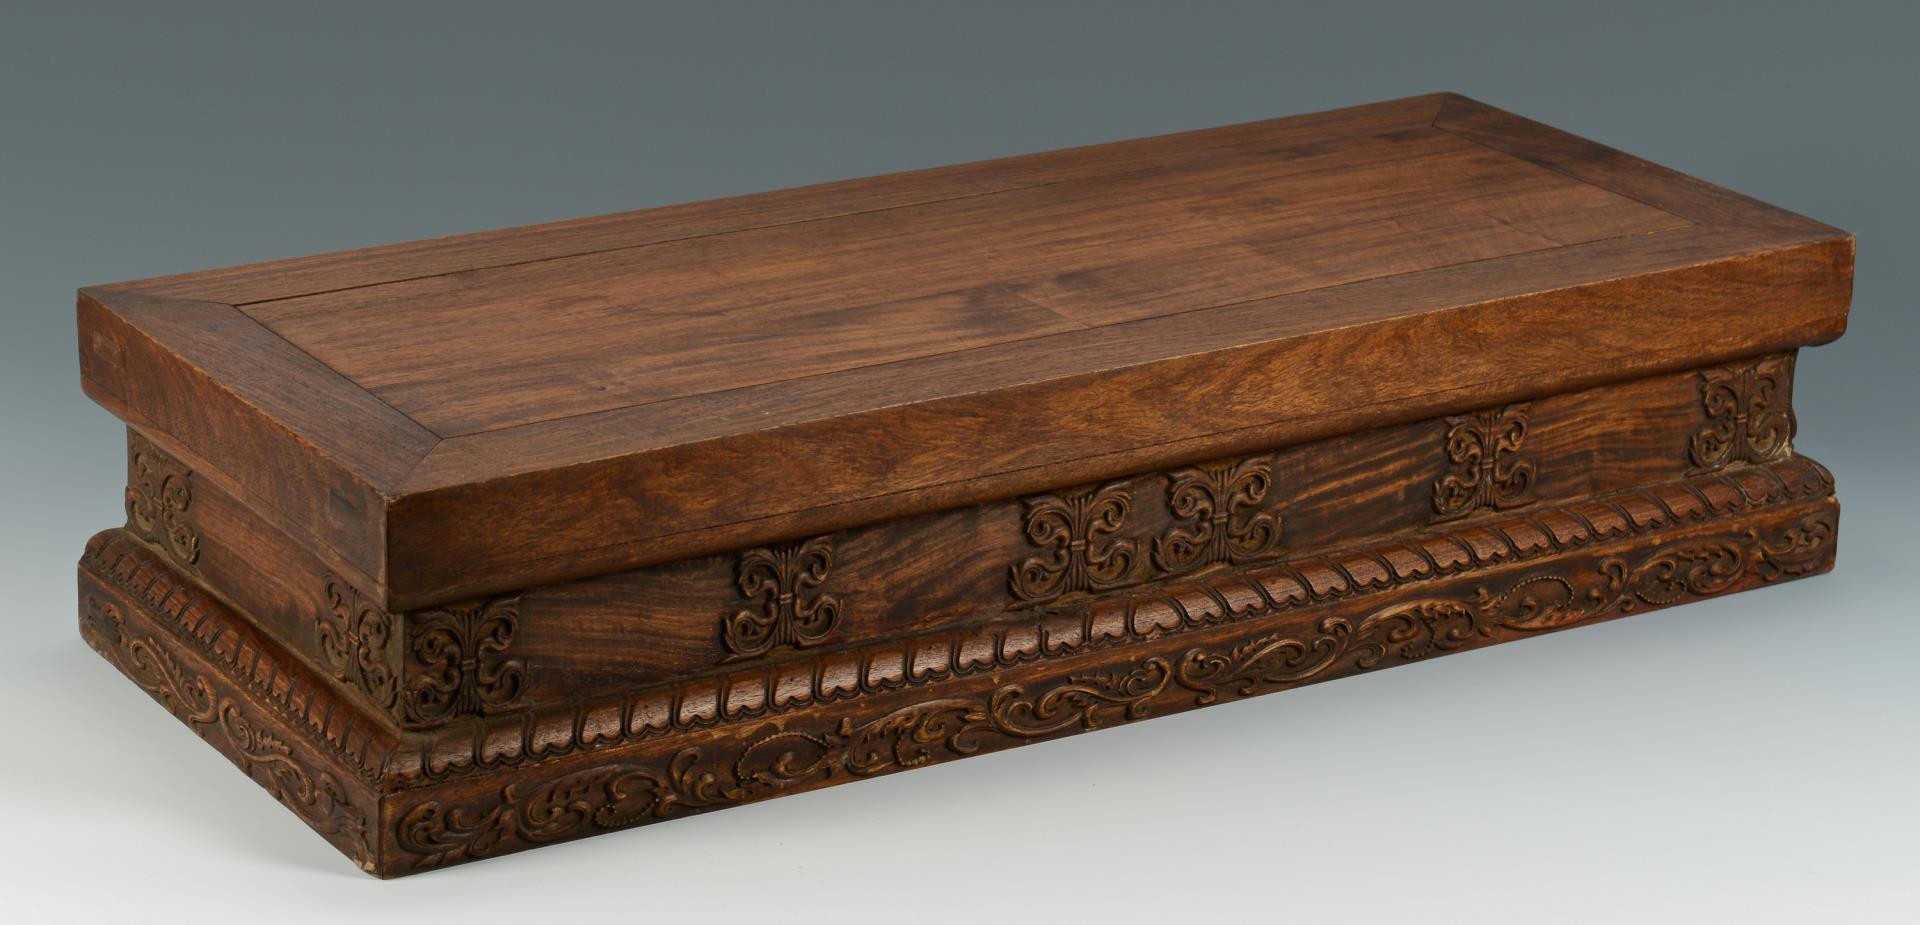 Lot 3594216: Chinese Hardwood Low Table